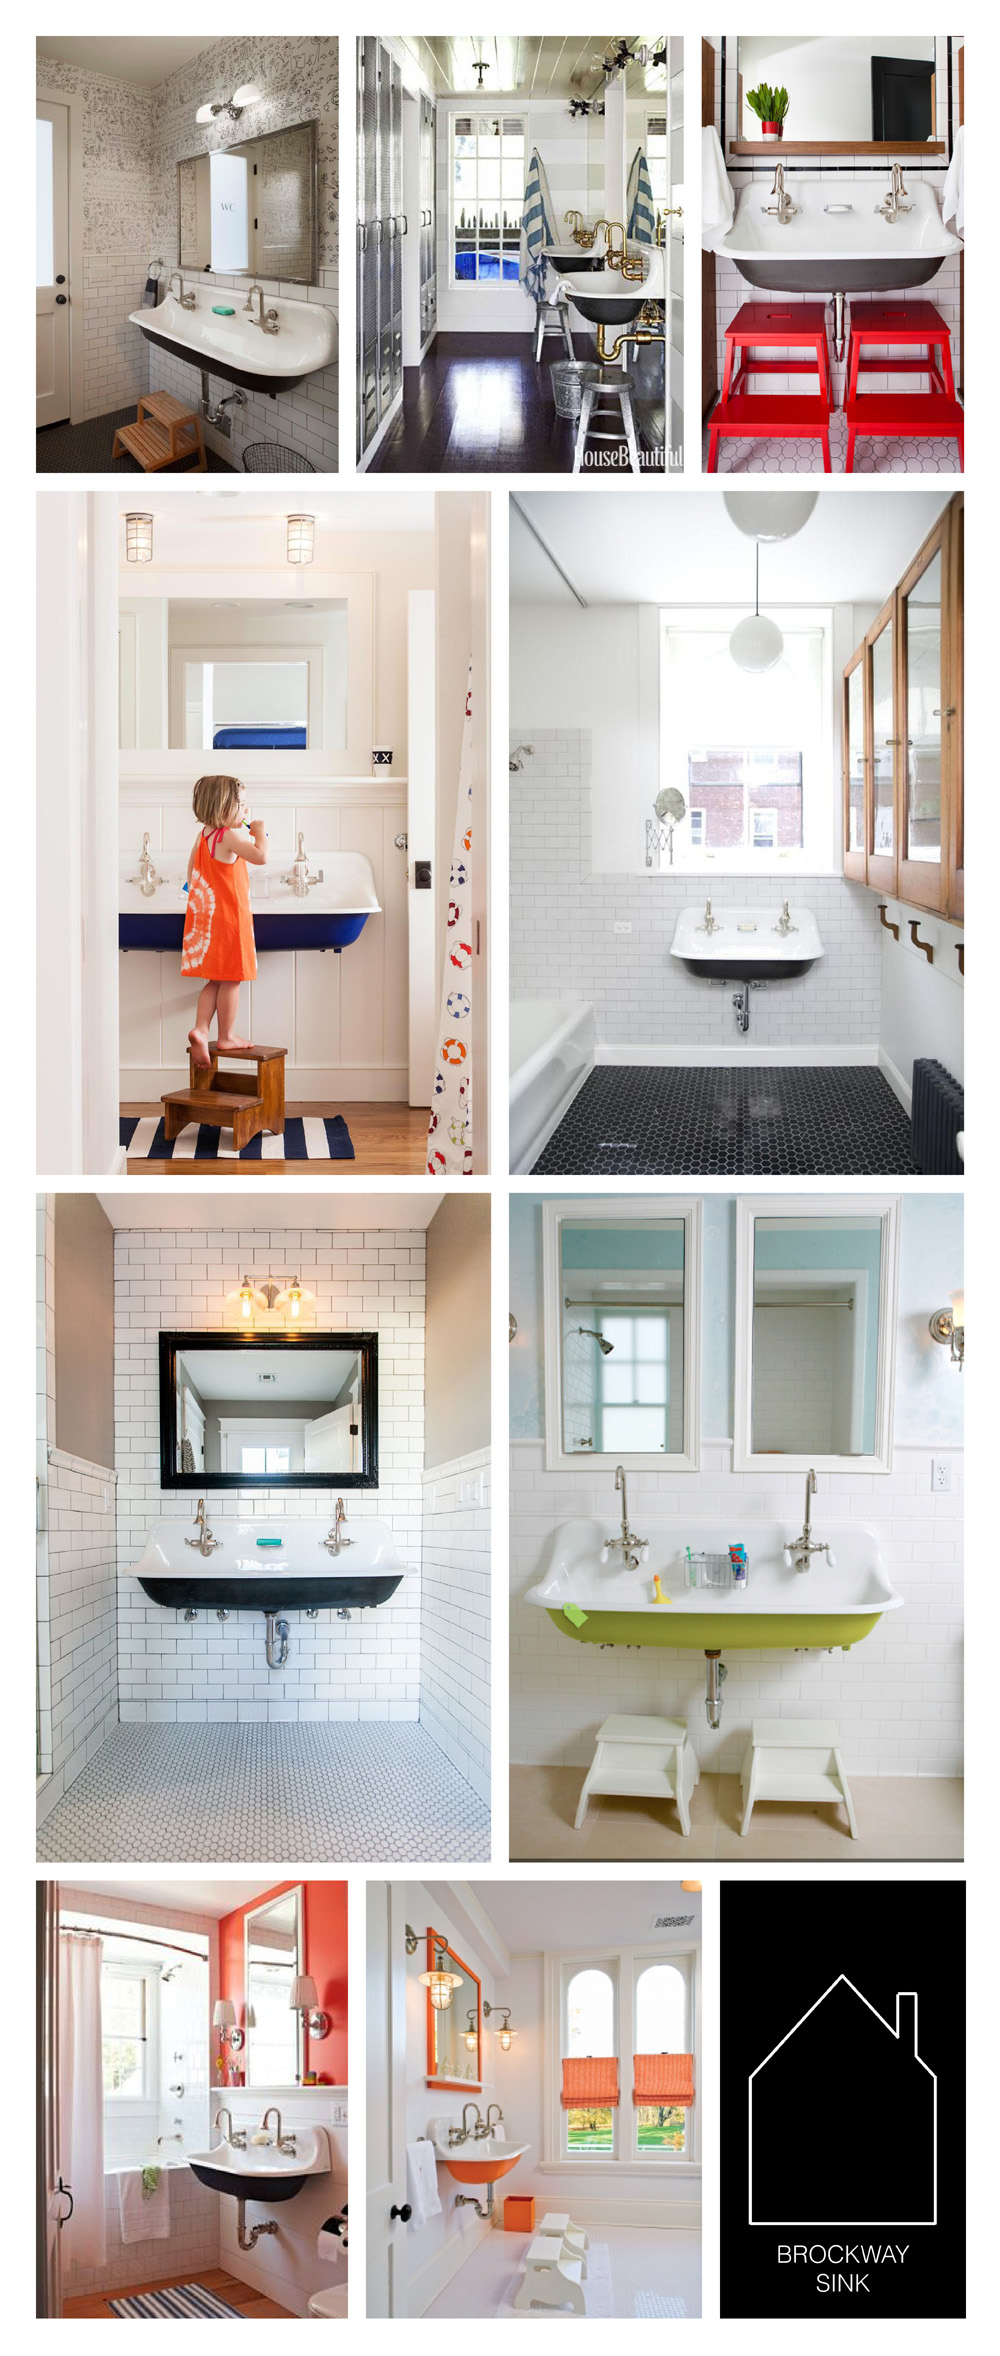 from top left - modern farmhouse by SDG Architects - california beach house via House Beautiful by design by Kim Dempster and Erin Martin - design by Terra Cotta Properties - Bourne home via The Boston Globe - Brooklyn remodel design by Elizabeth Roberts via REMODELISTA - source unknown - source unknown - Bedford home via The Zhush